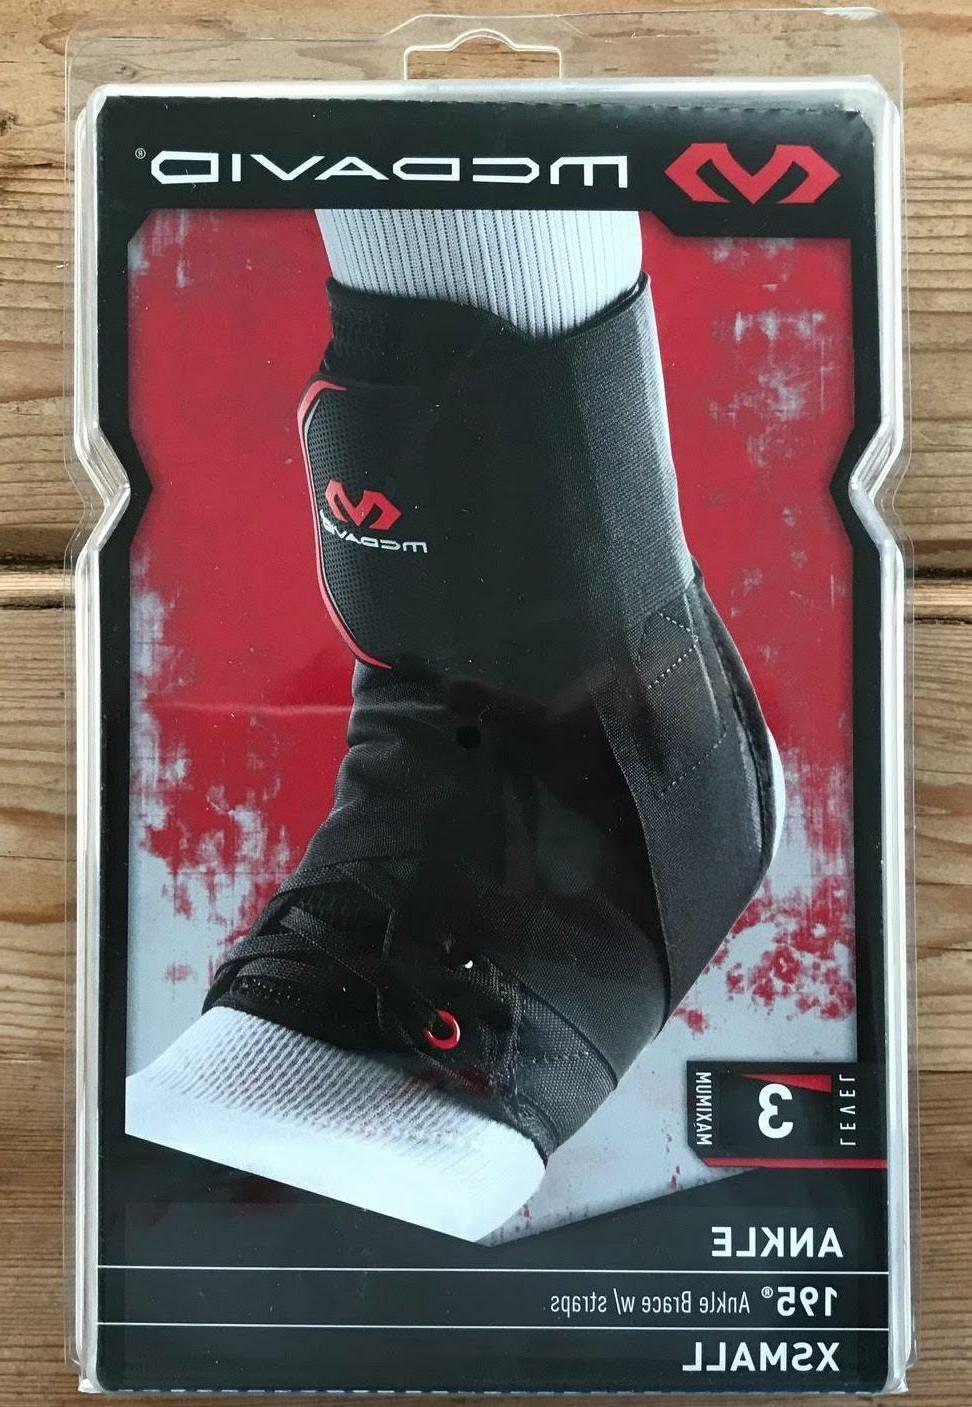 McDavid Level 3 Maximum Strength Neoprene Ankle Brace XS Bla